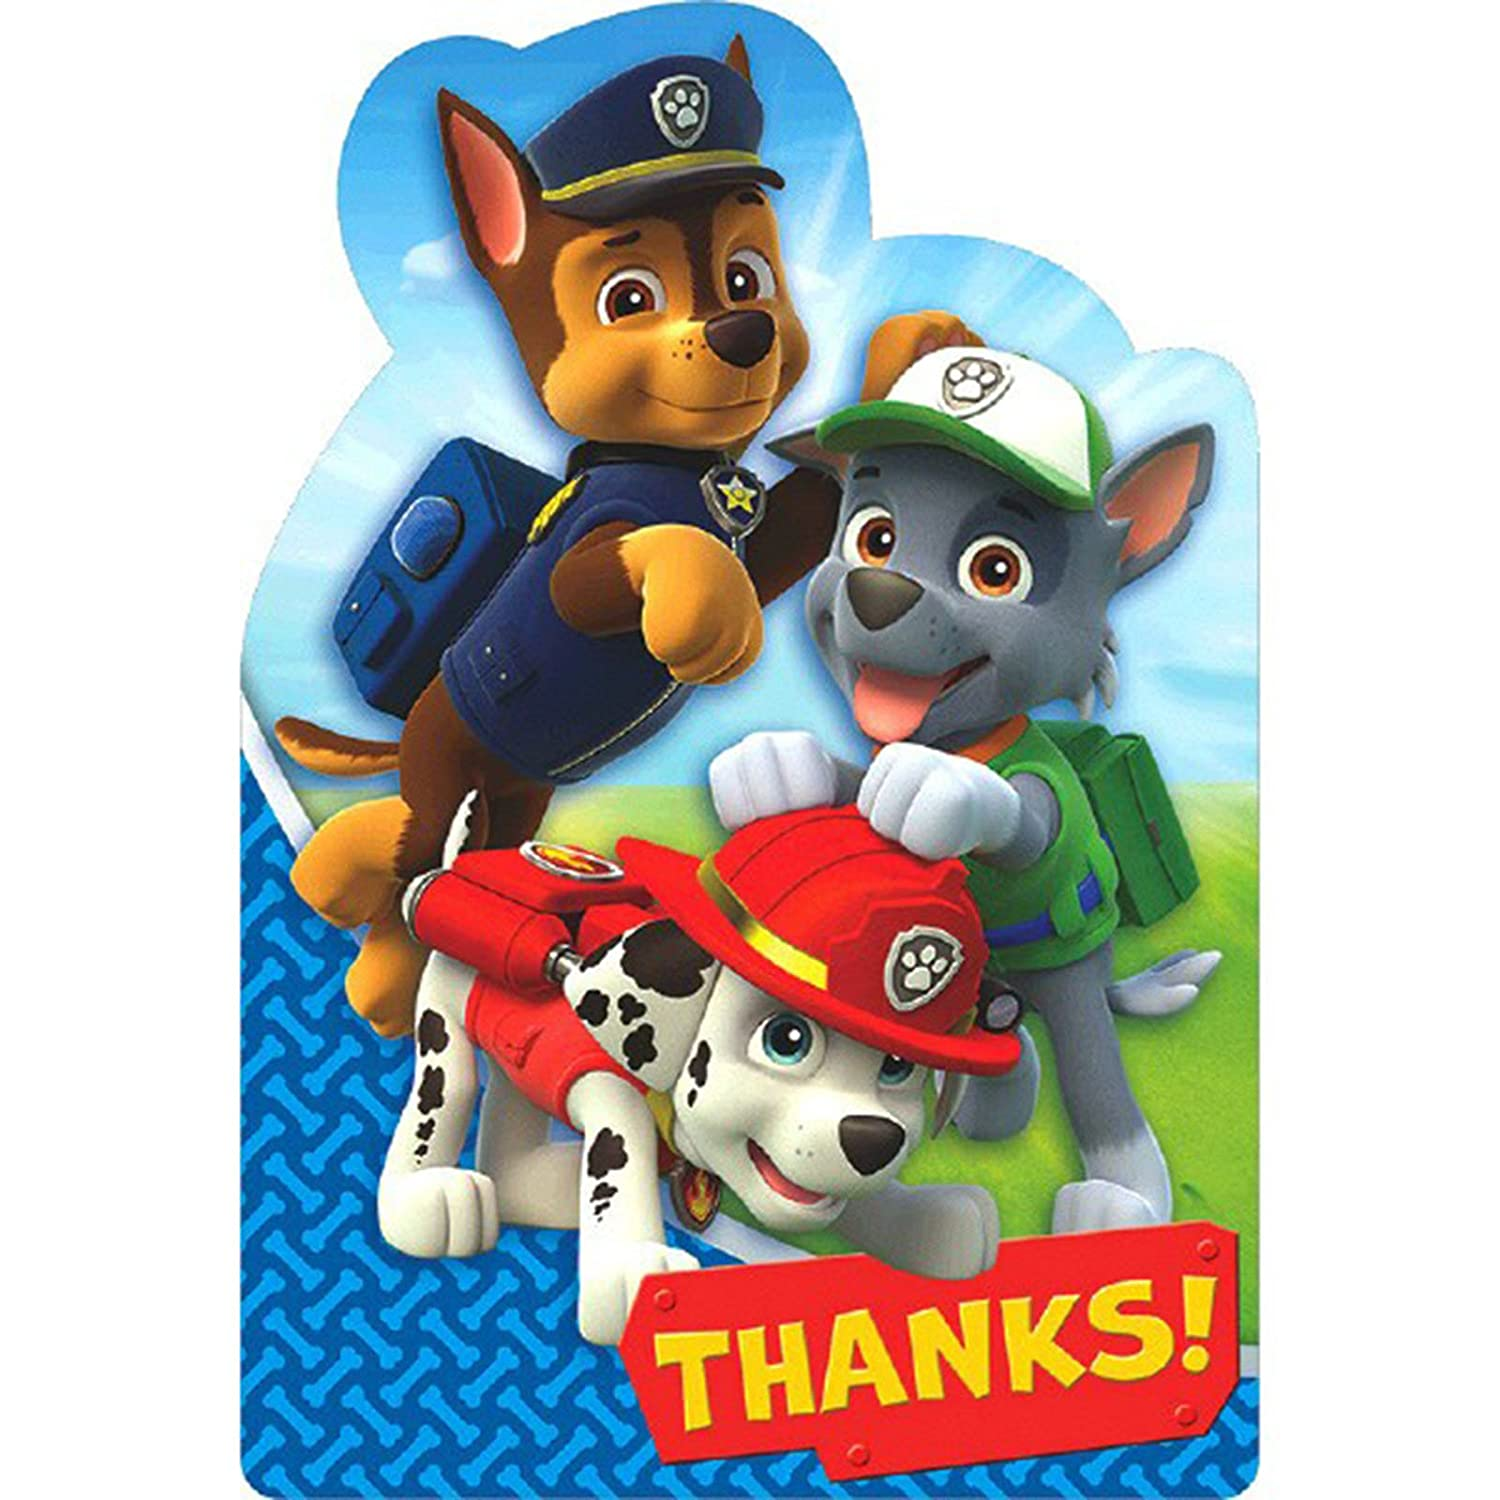 8 Paw Patrol Postcard Party Thank You Cards Partyrama 481462AMS-PP-A